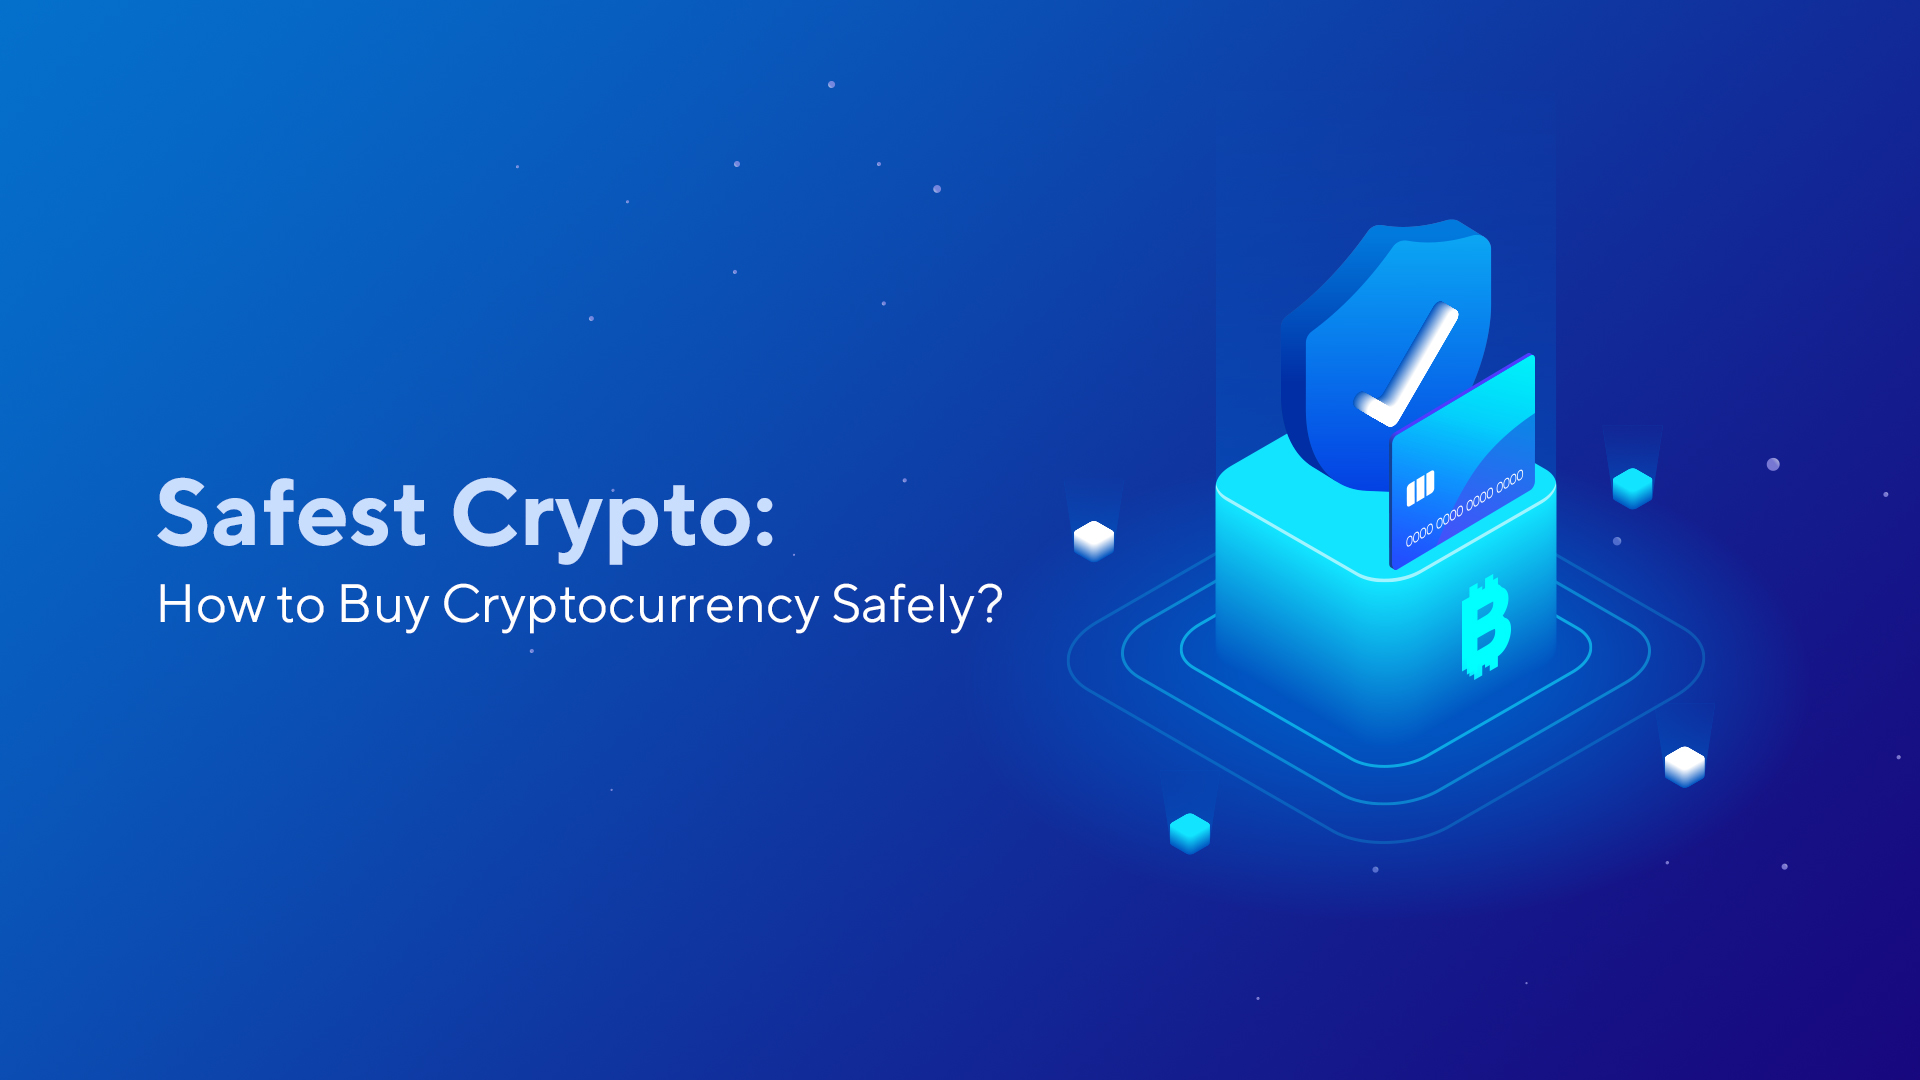 Safest Crypto: How to Buy Cryptocurrency Safely?